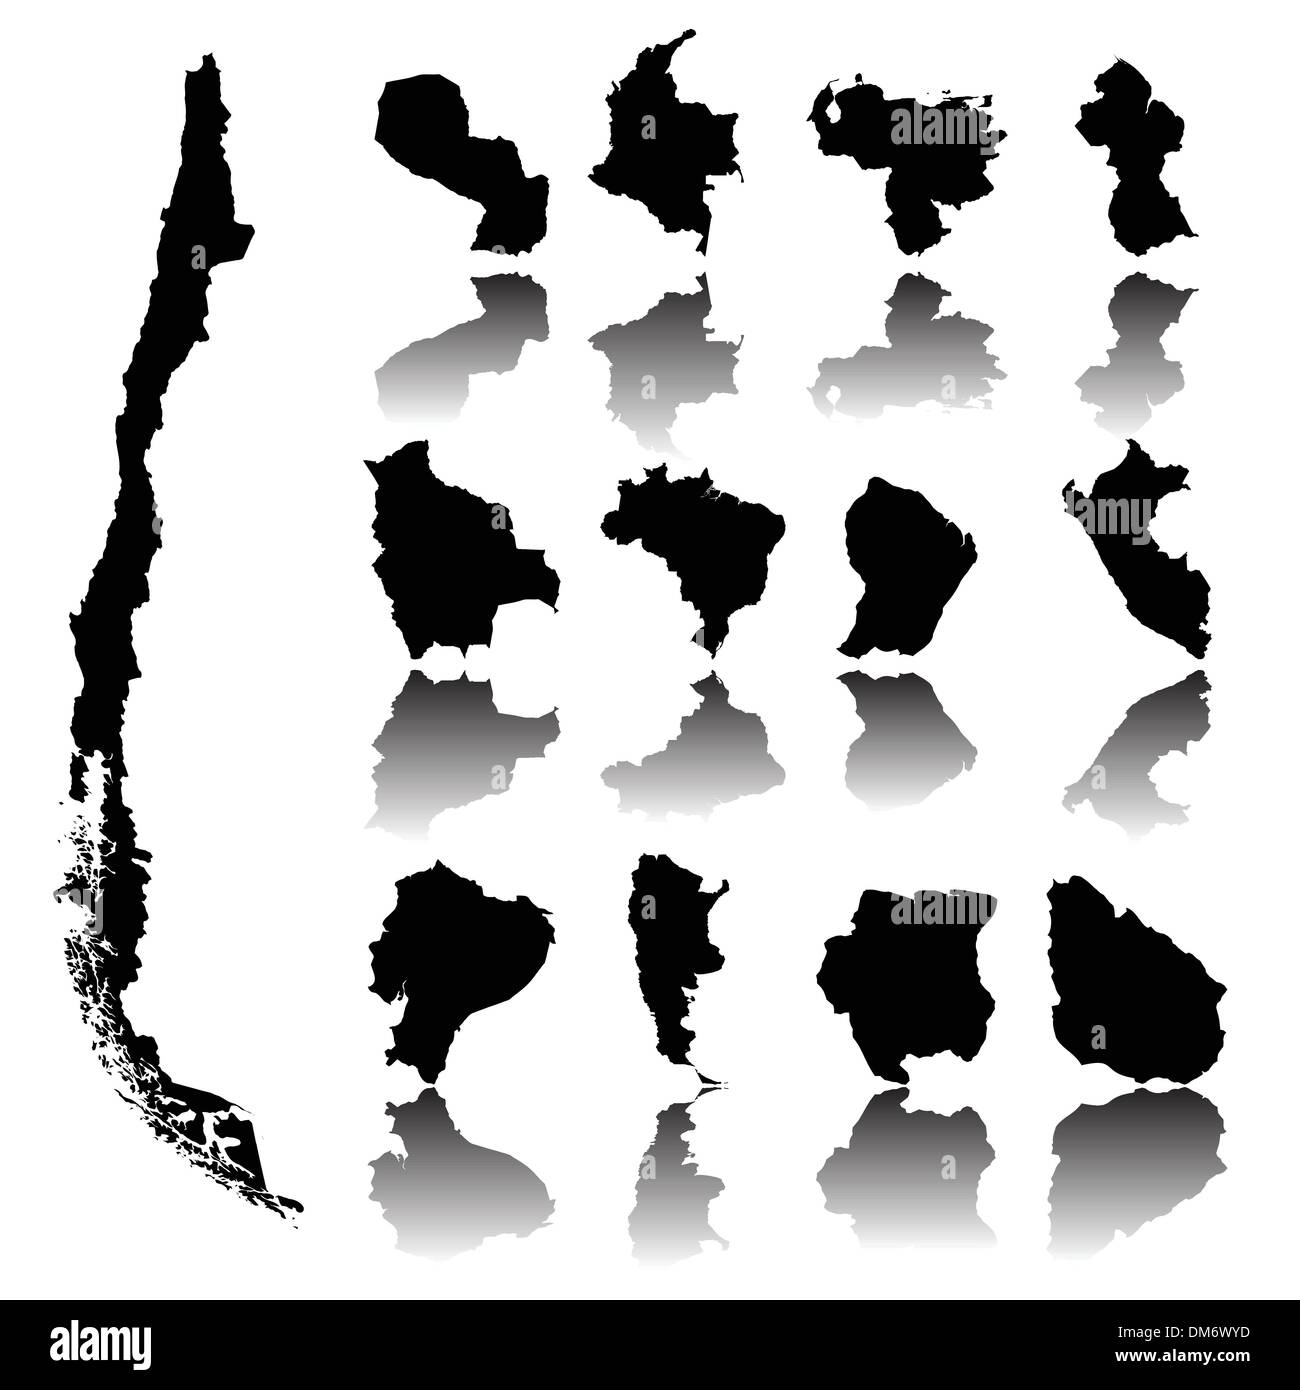 Maps of South America - Stock Image